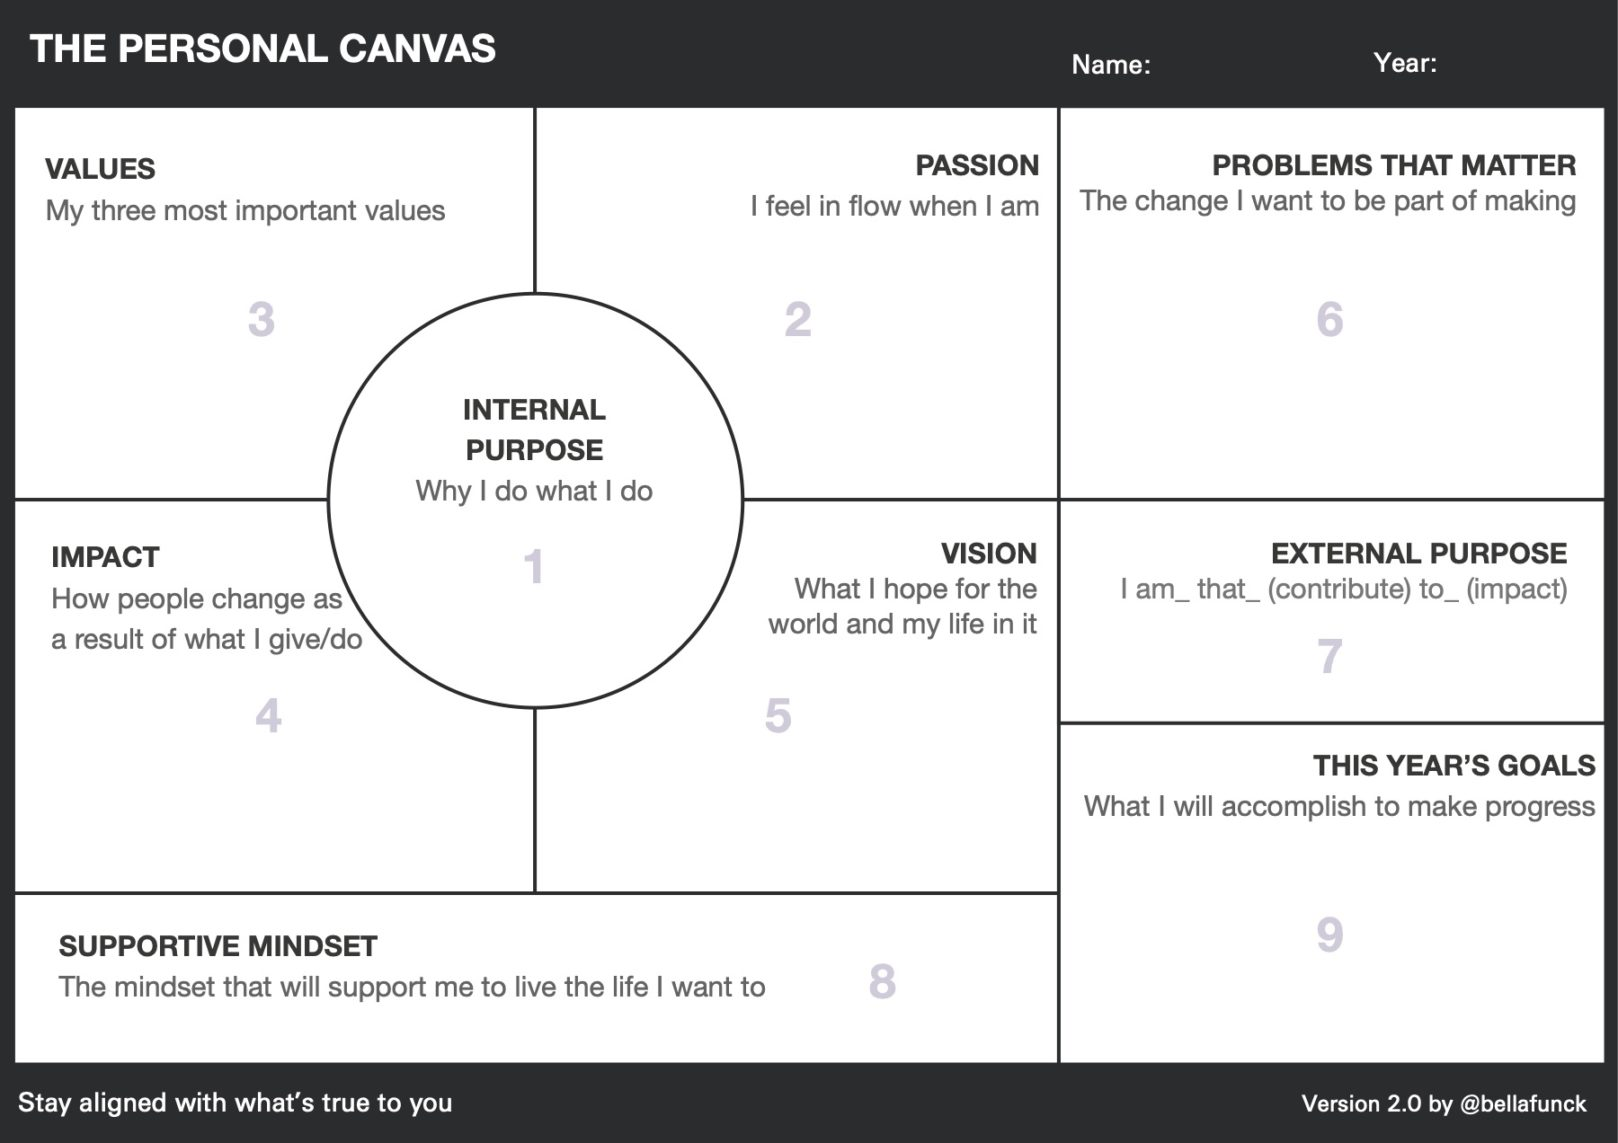 The Personal Canvas